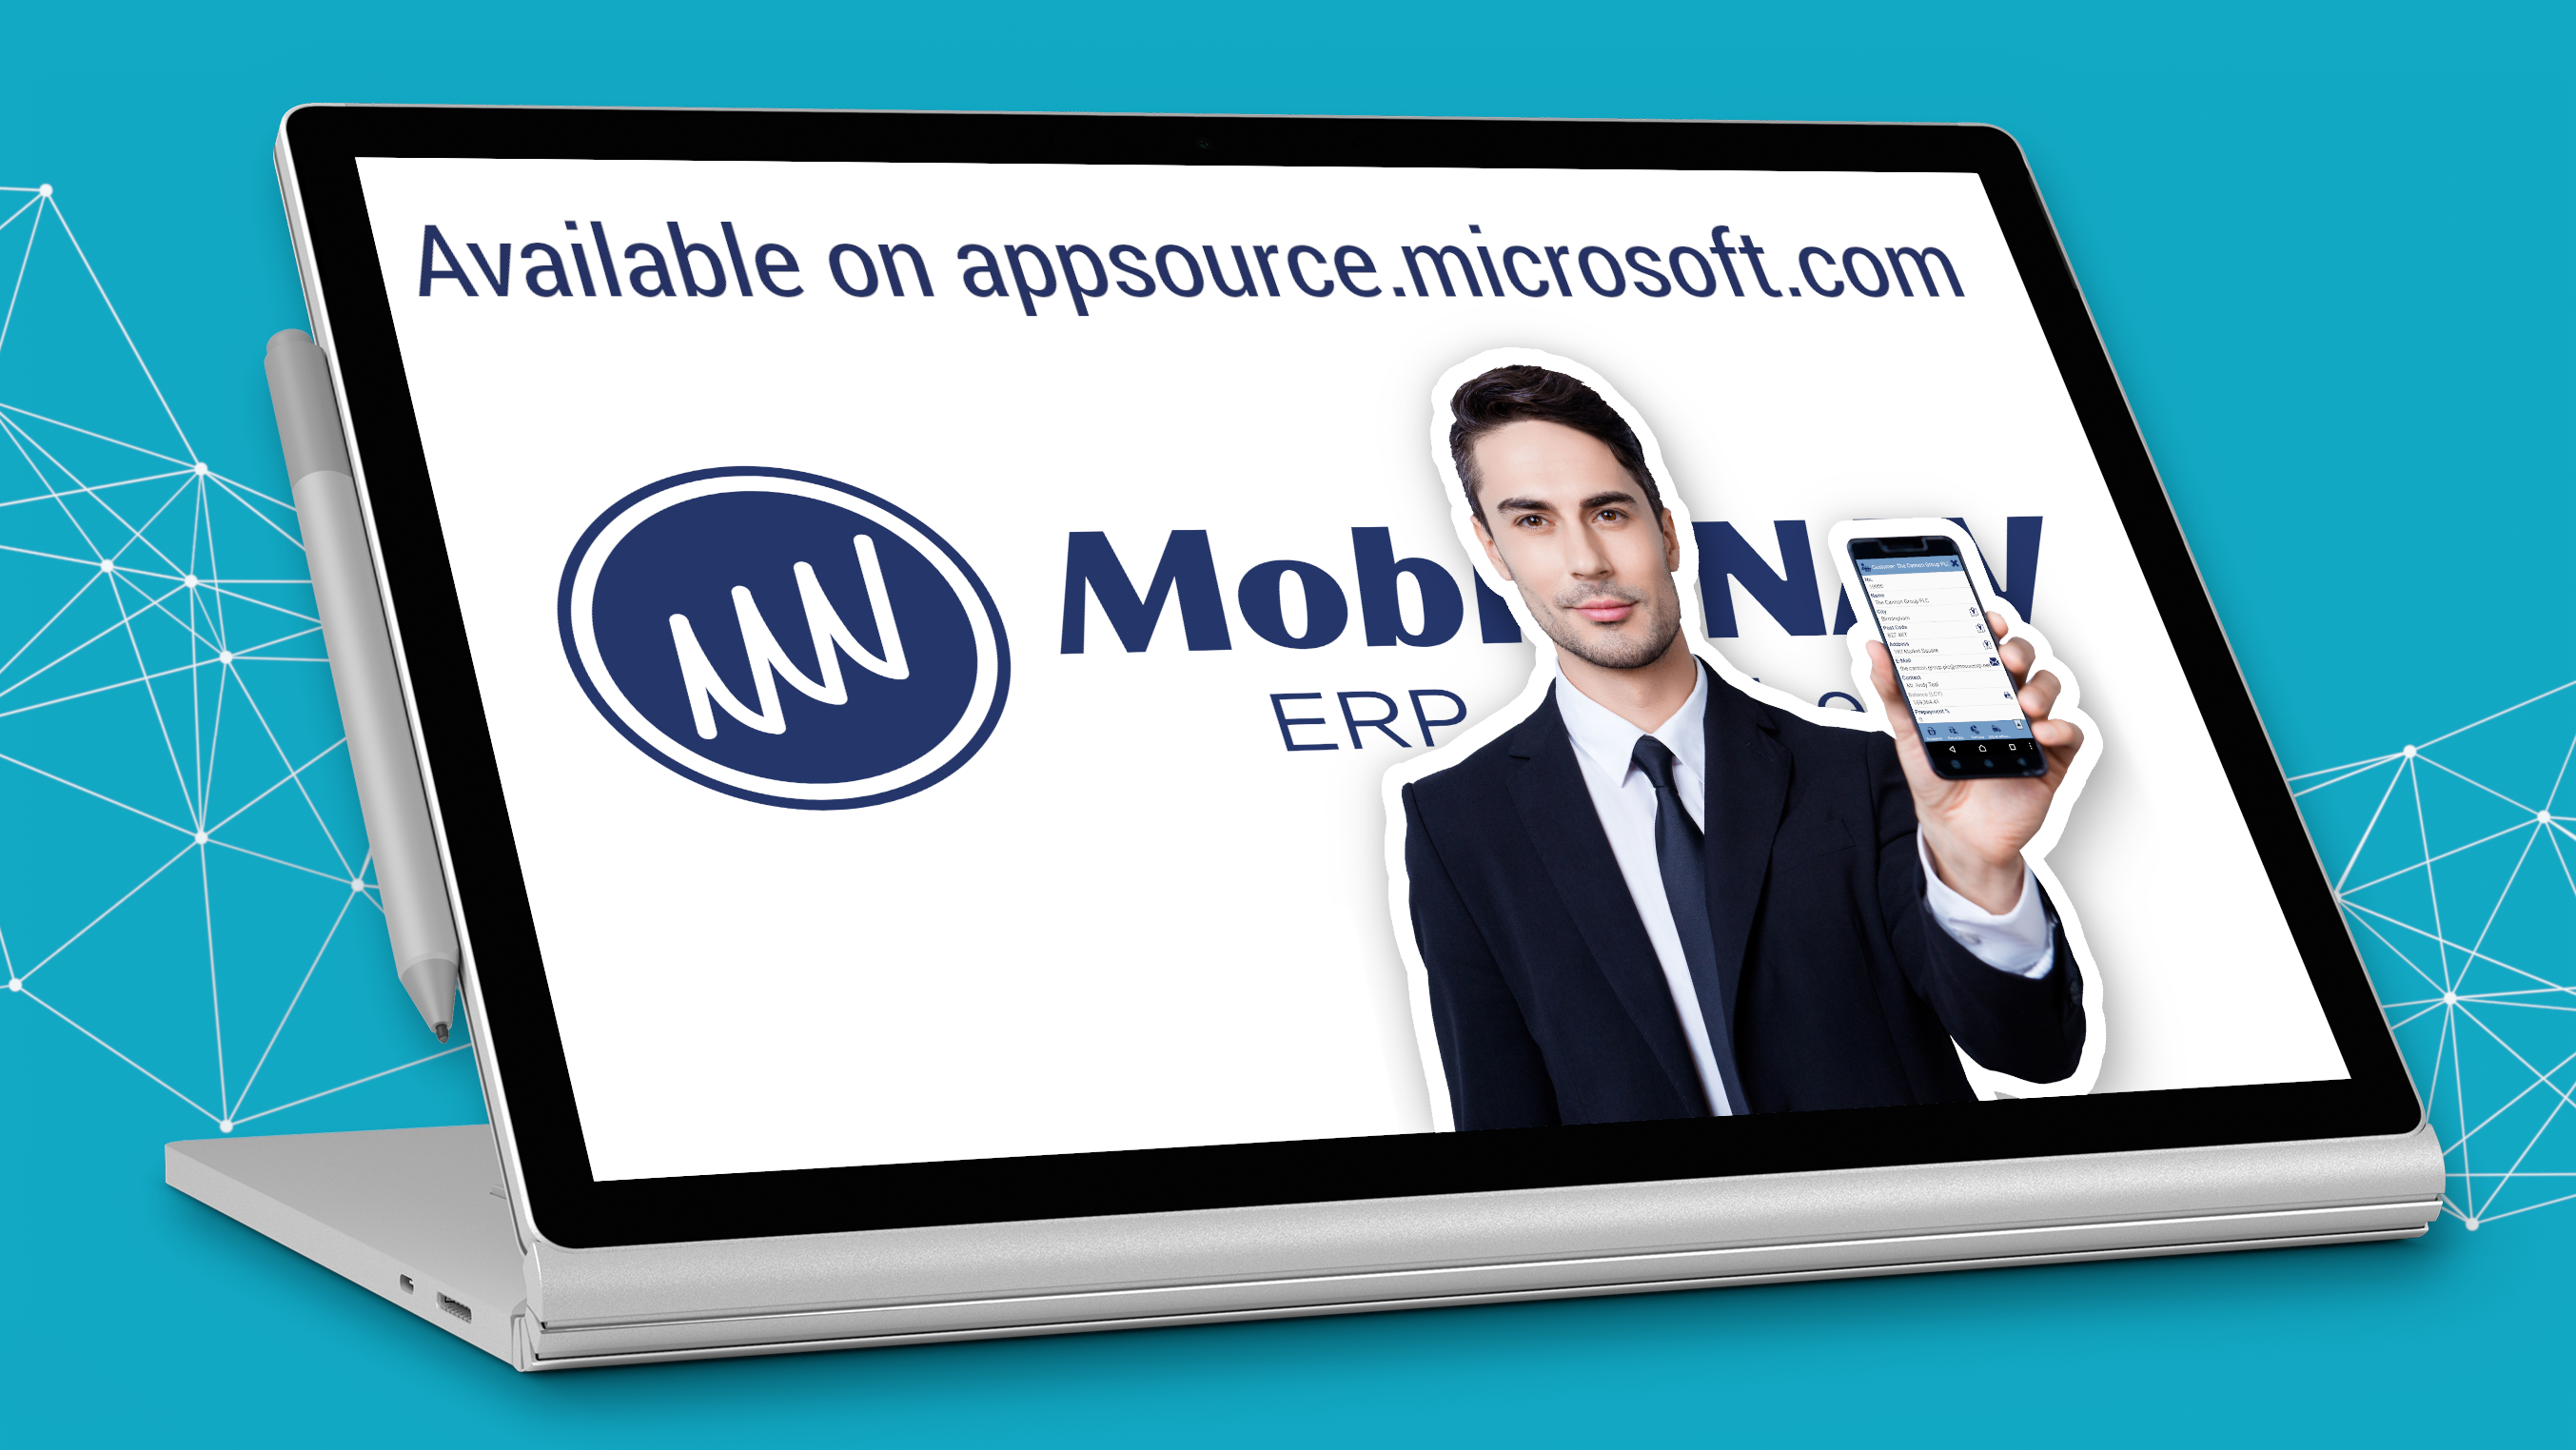 MobileNAV is available on AppSource! - Check out and download it!